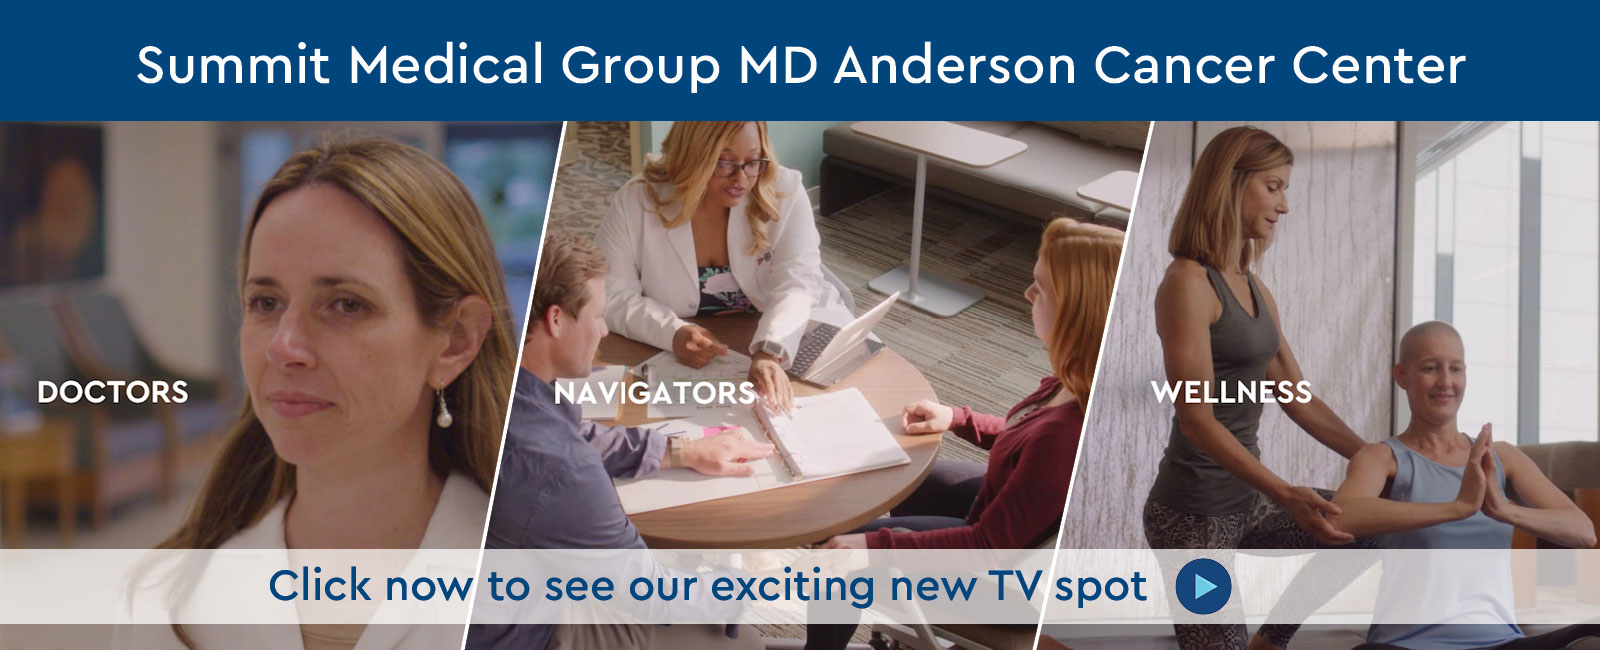 Summit Medical Group MD Anderson Medical Center: Click now to see our exciting new TV spot